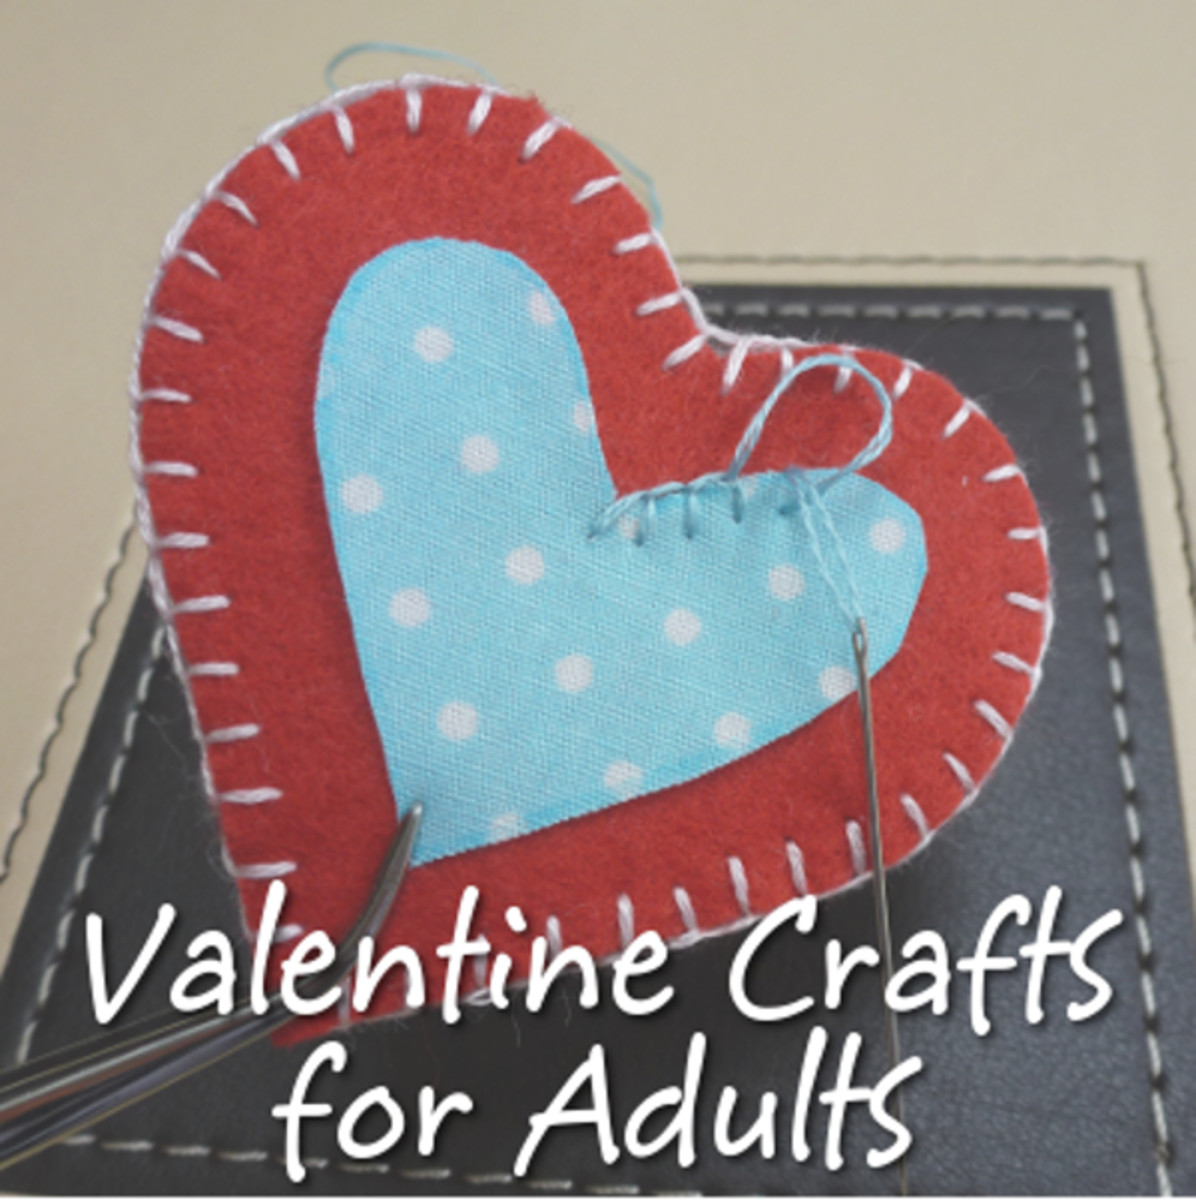 Fun Valentine Crafts for Adults to Make